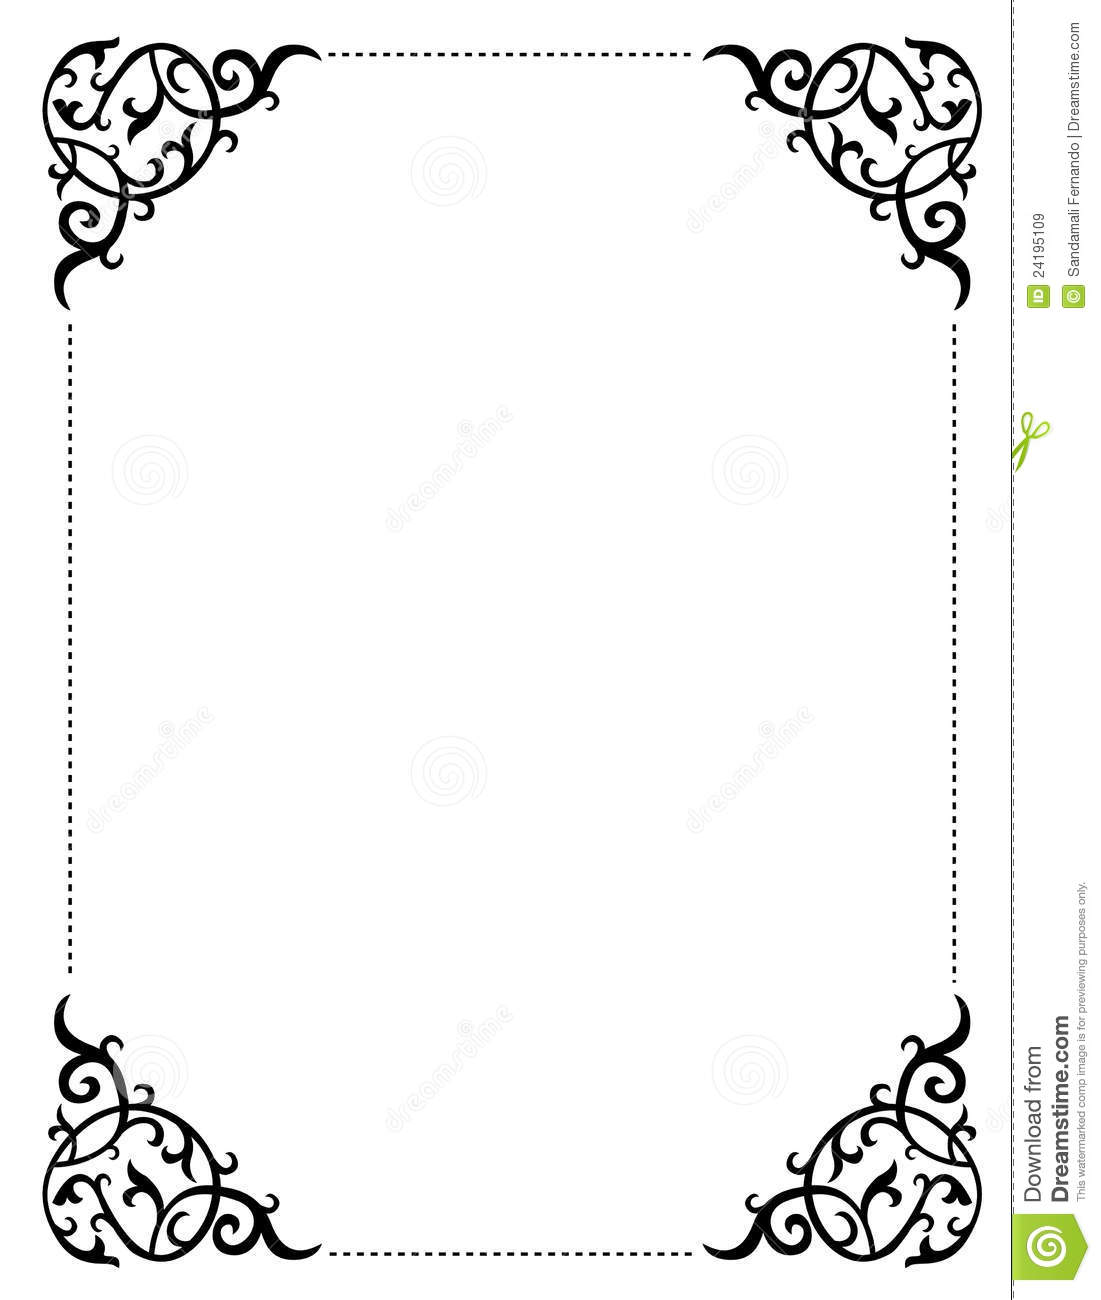 Blank Luau Invitation Borders